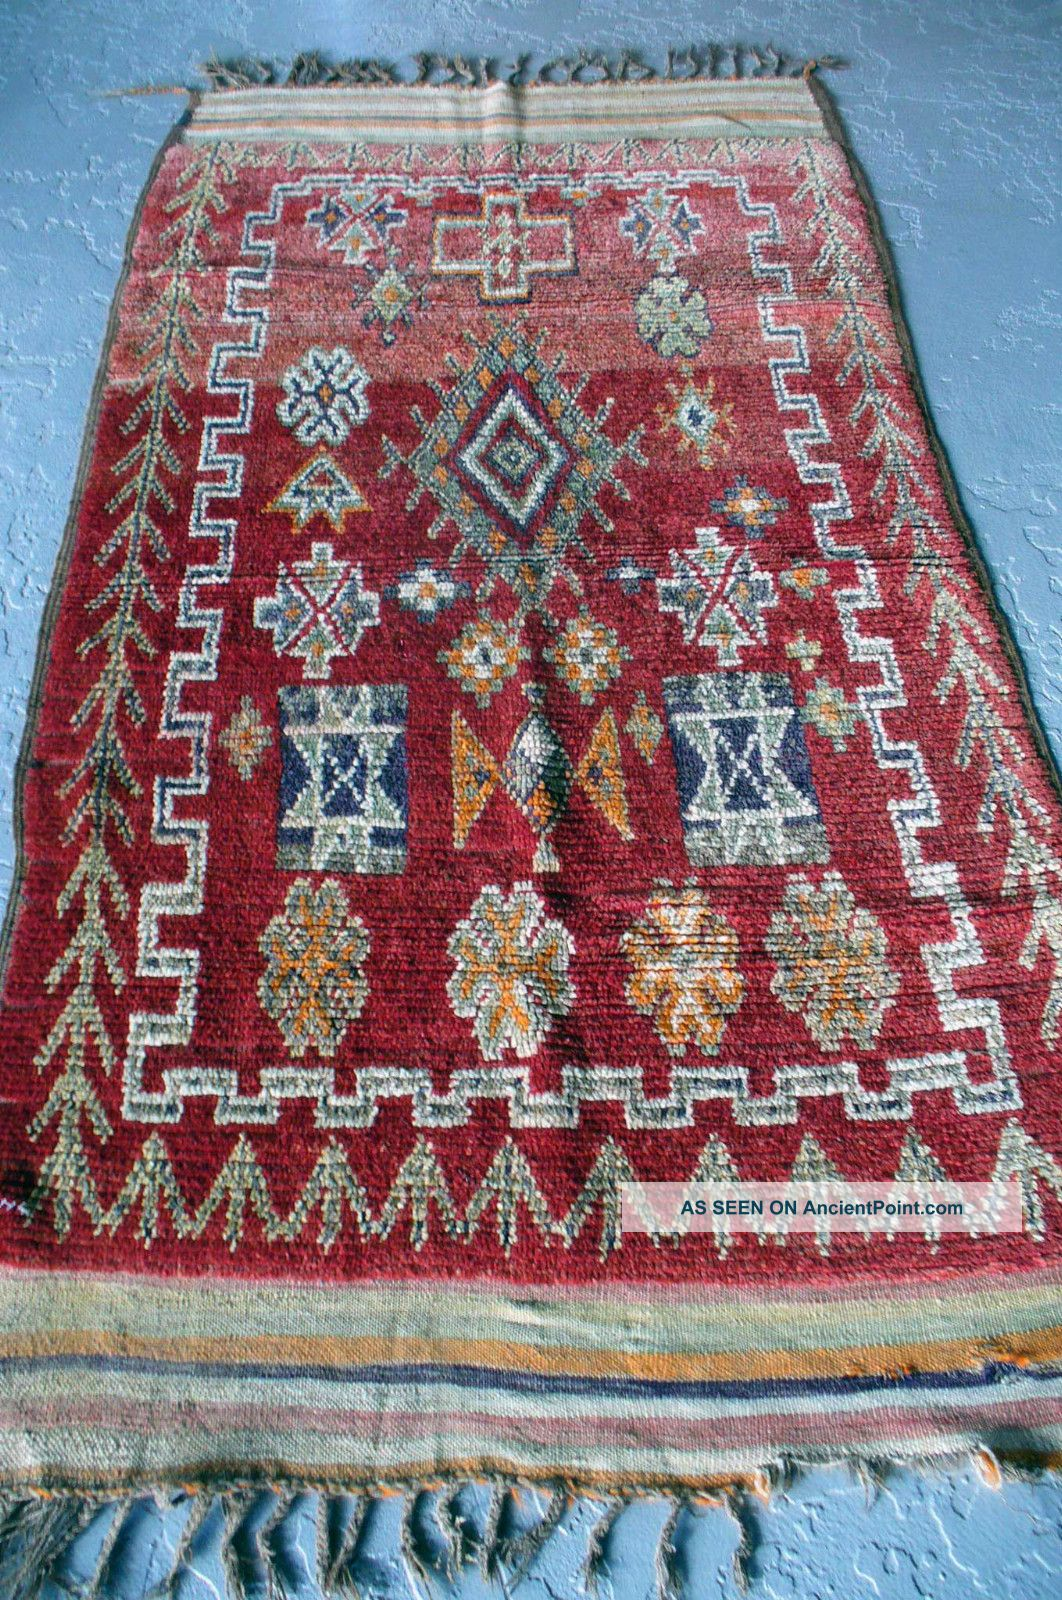 Antique Moroccan Rug - Rare Estate Find 100% Wool,  All Vegetal Dyes.  Even Wear. Medium (4x6-6x9) photo